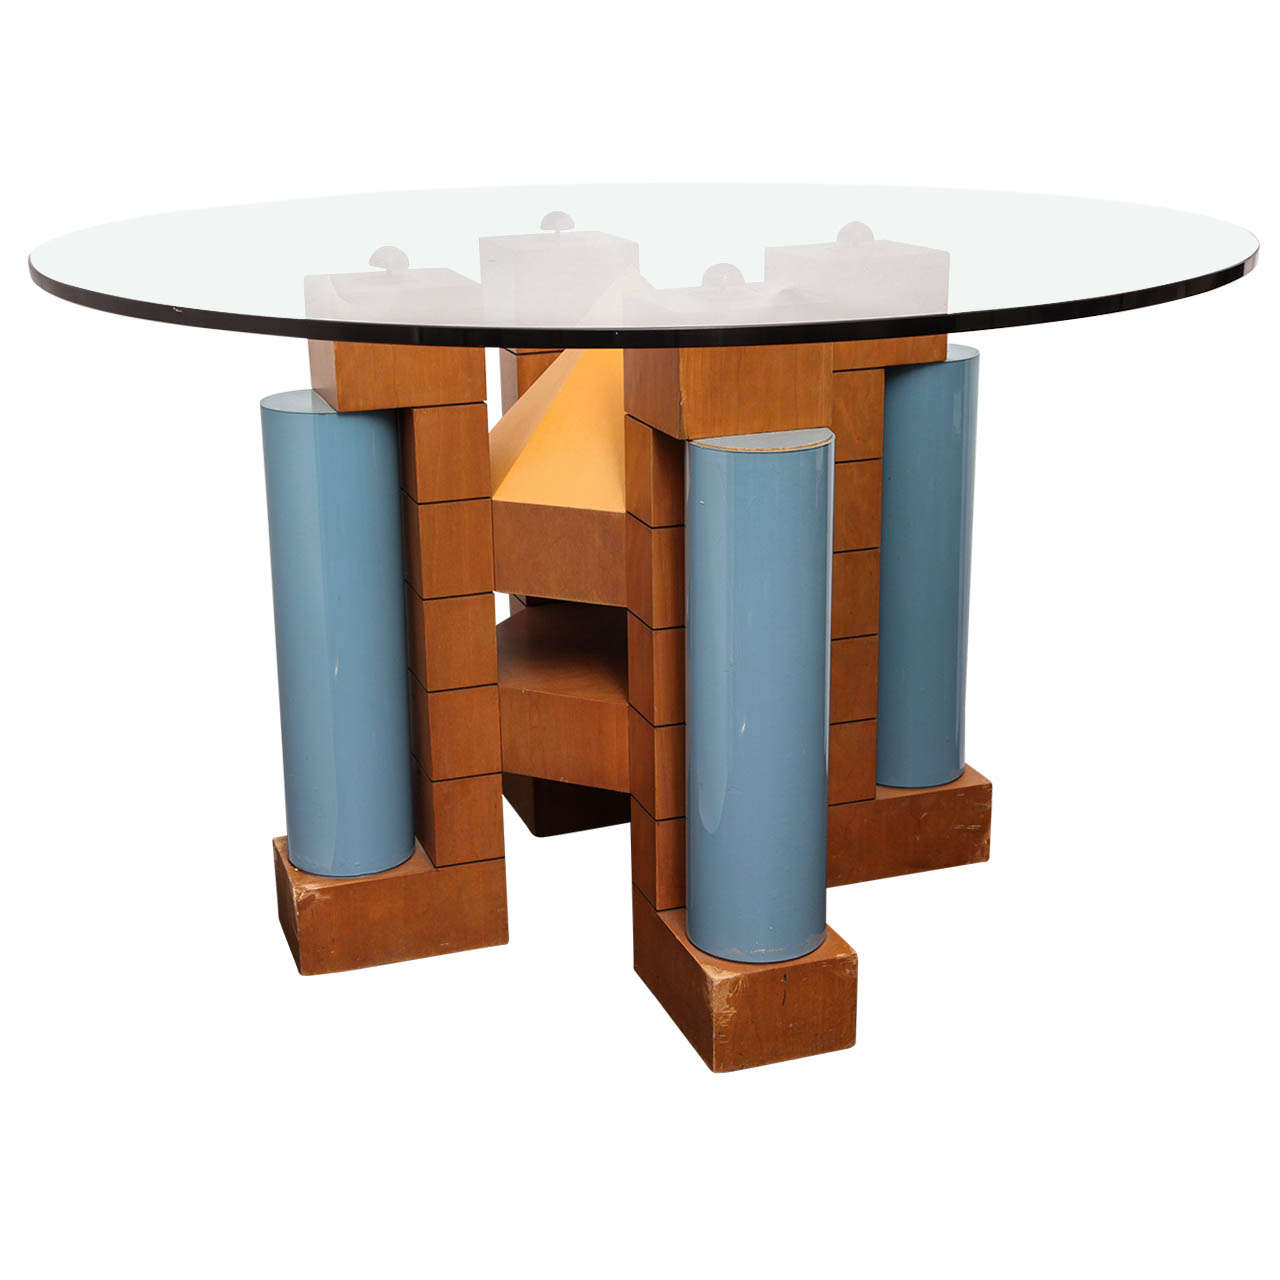 a 1980s post modern dining table by michael graves at 1stdibs